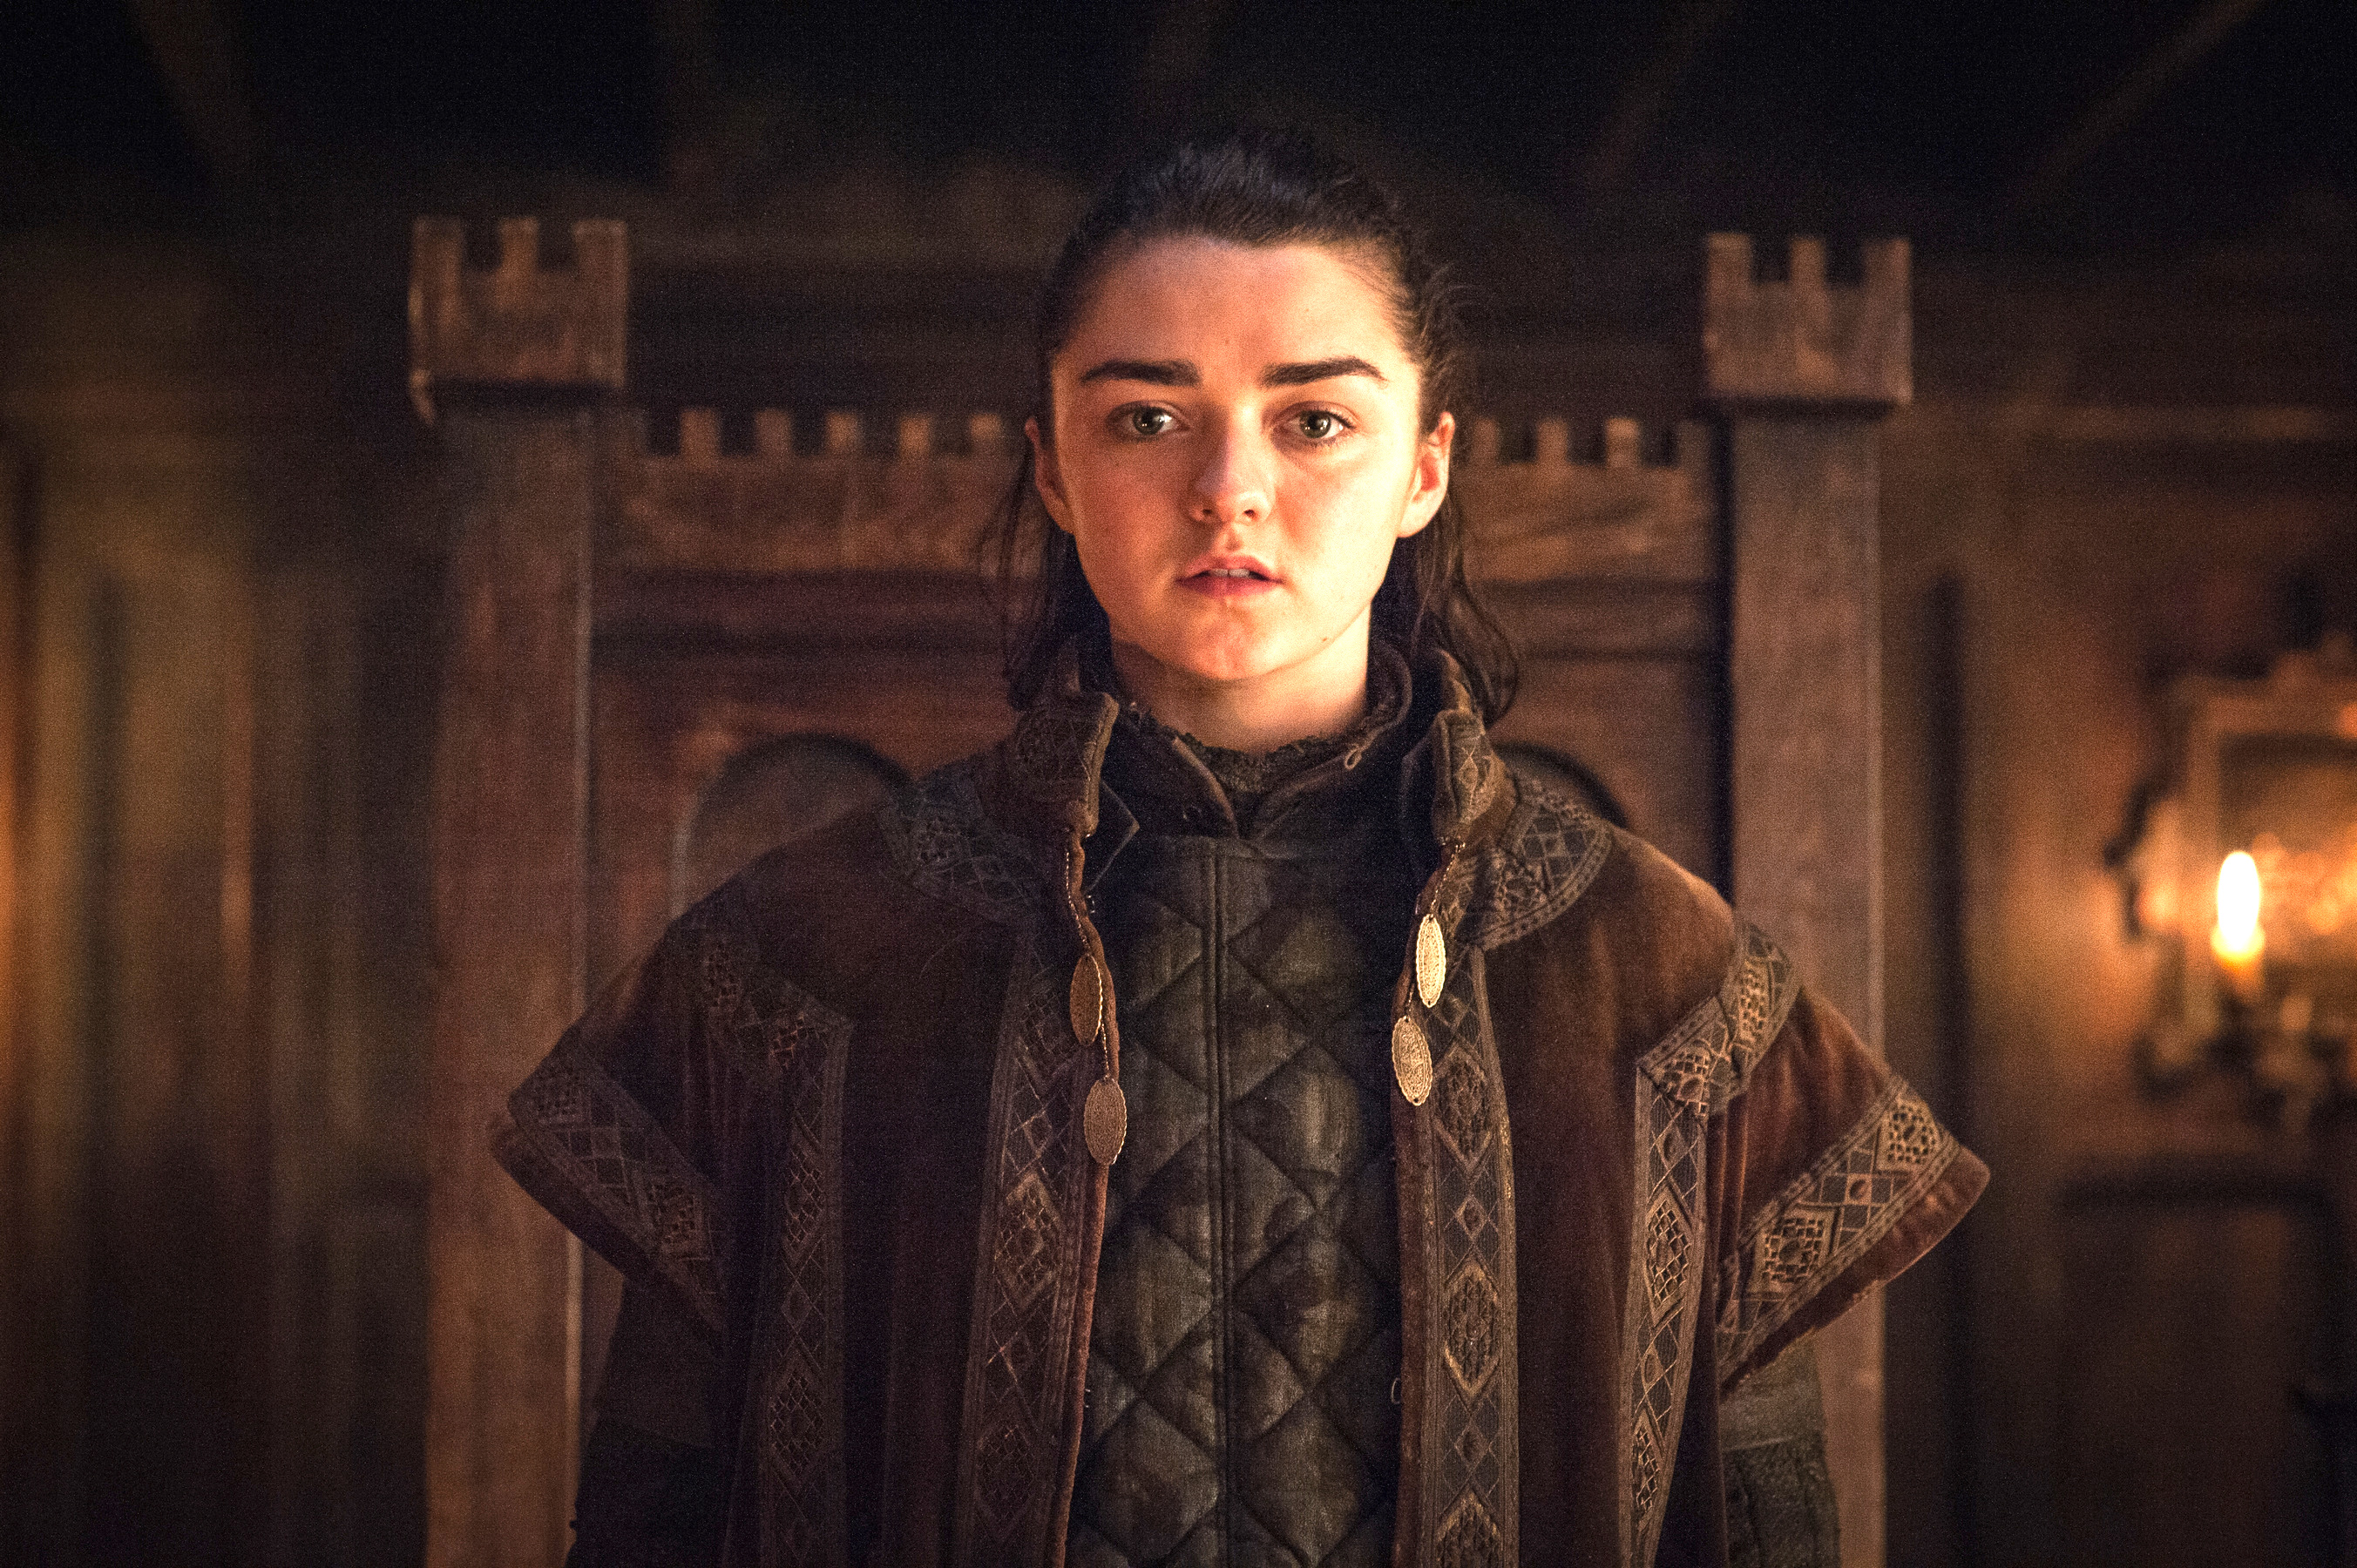 arya stark game of thrones season 7, hd tv shows, 4k wallpapers